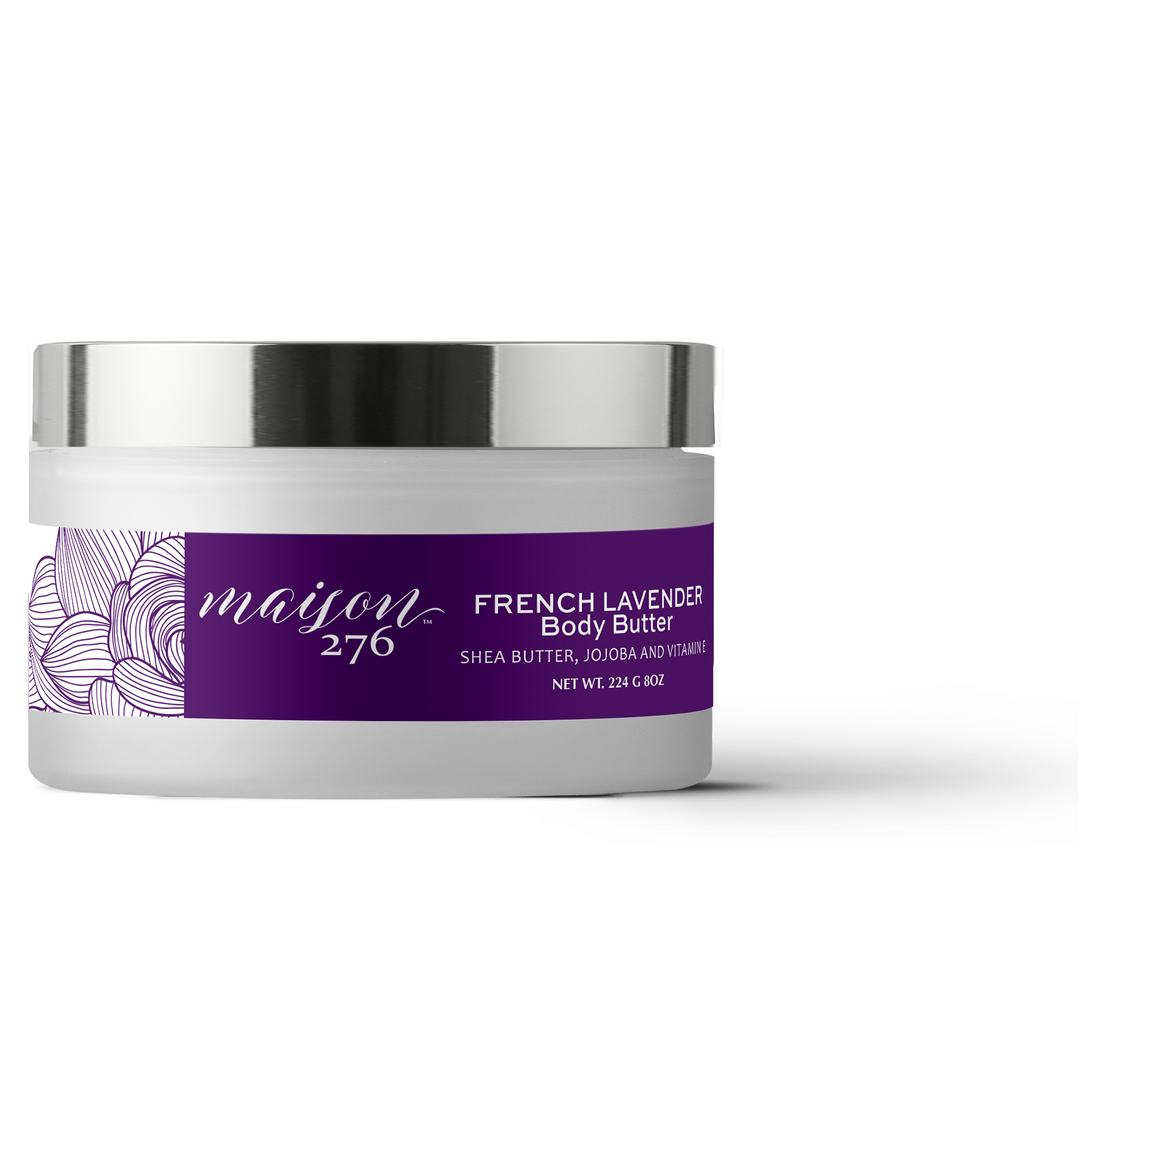 French Lavender Body Butter